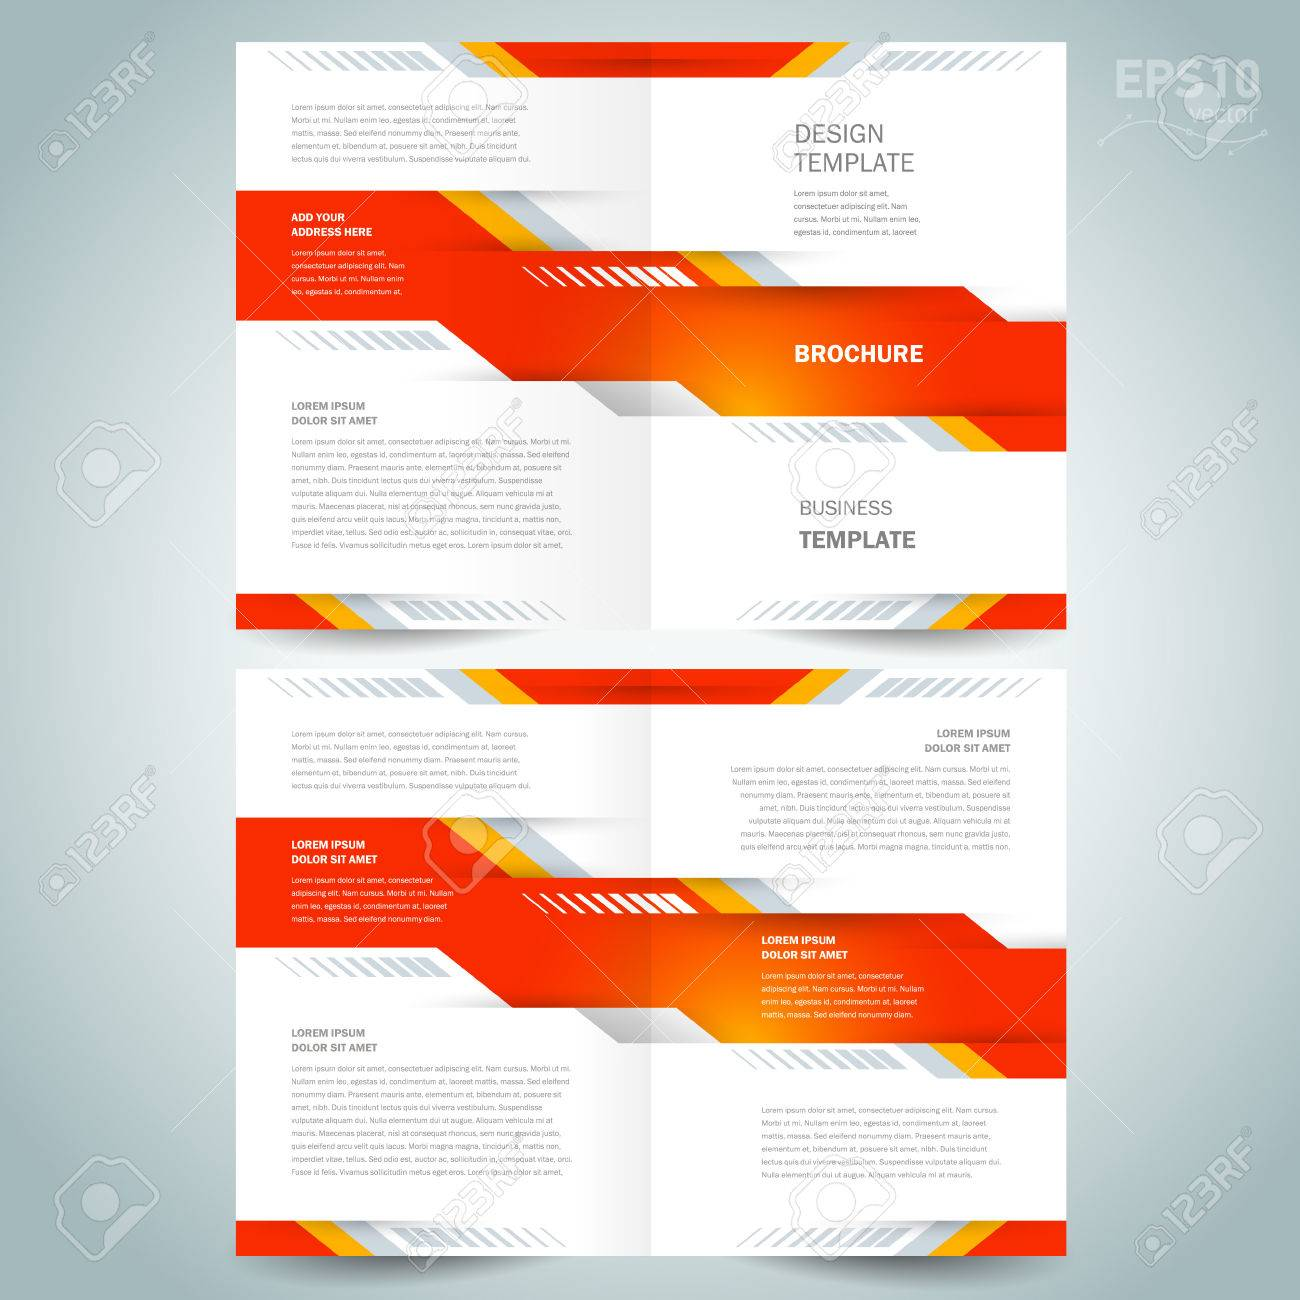 brochure design template vector booklet geometric abstract tech - 55381073